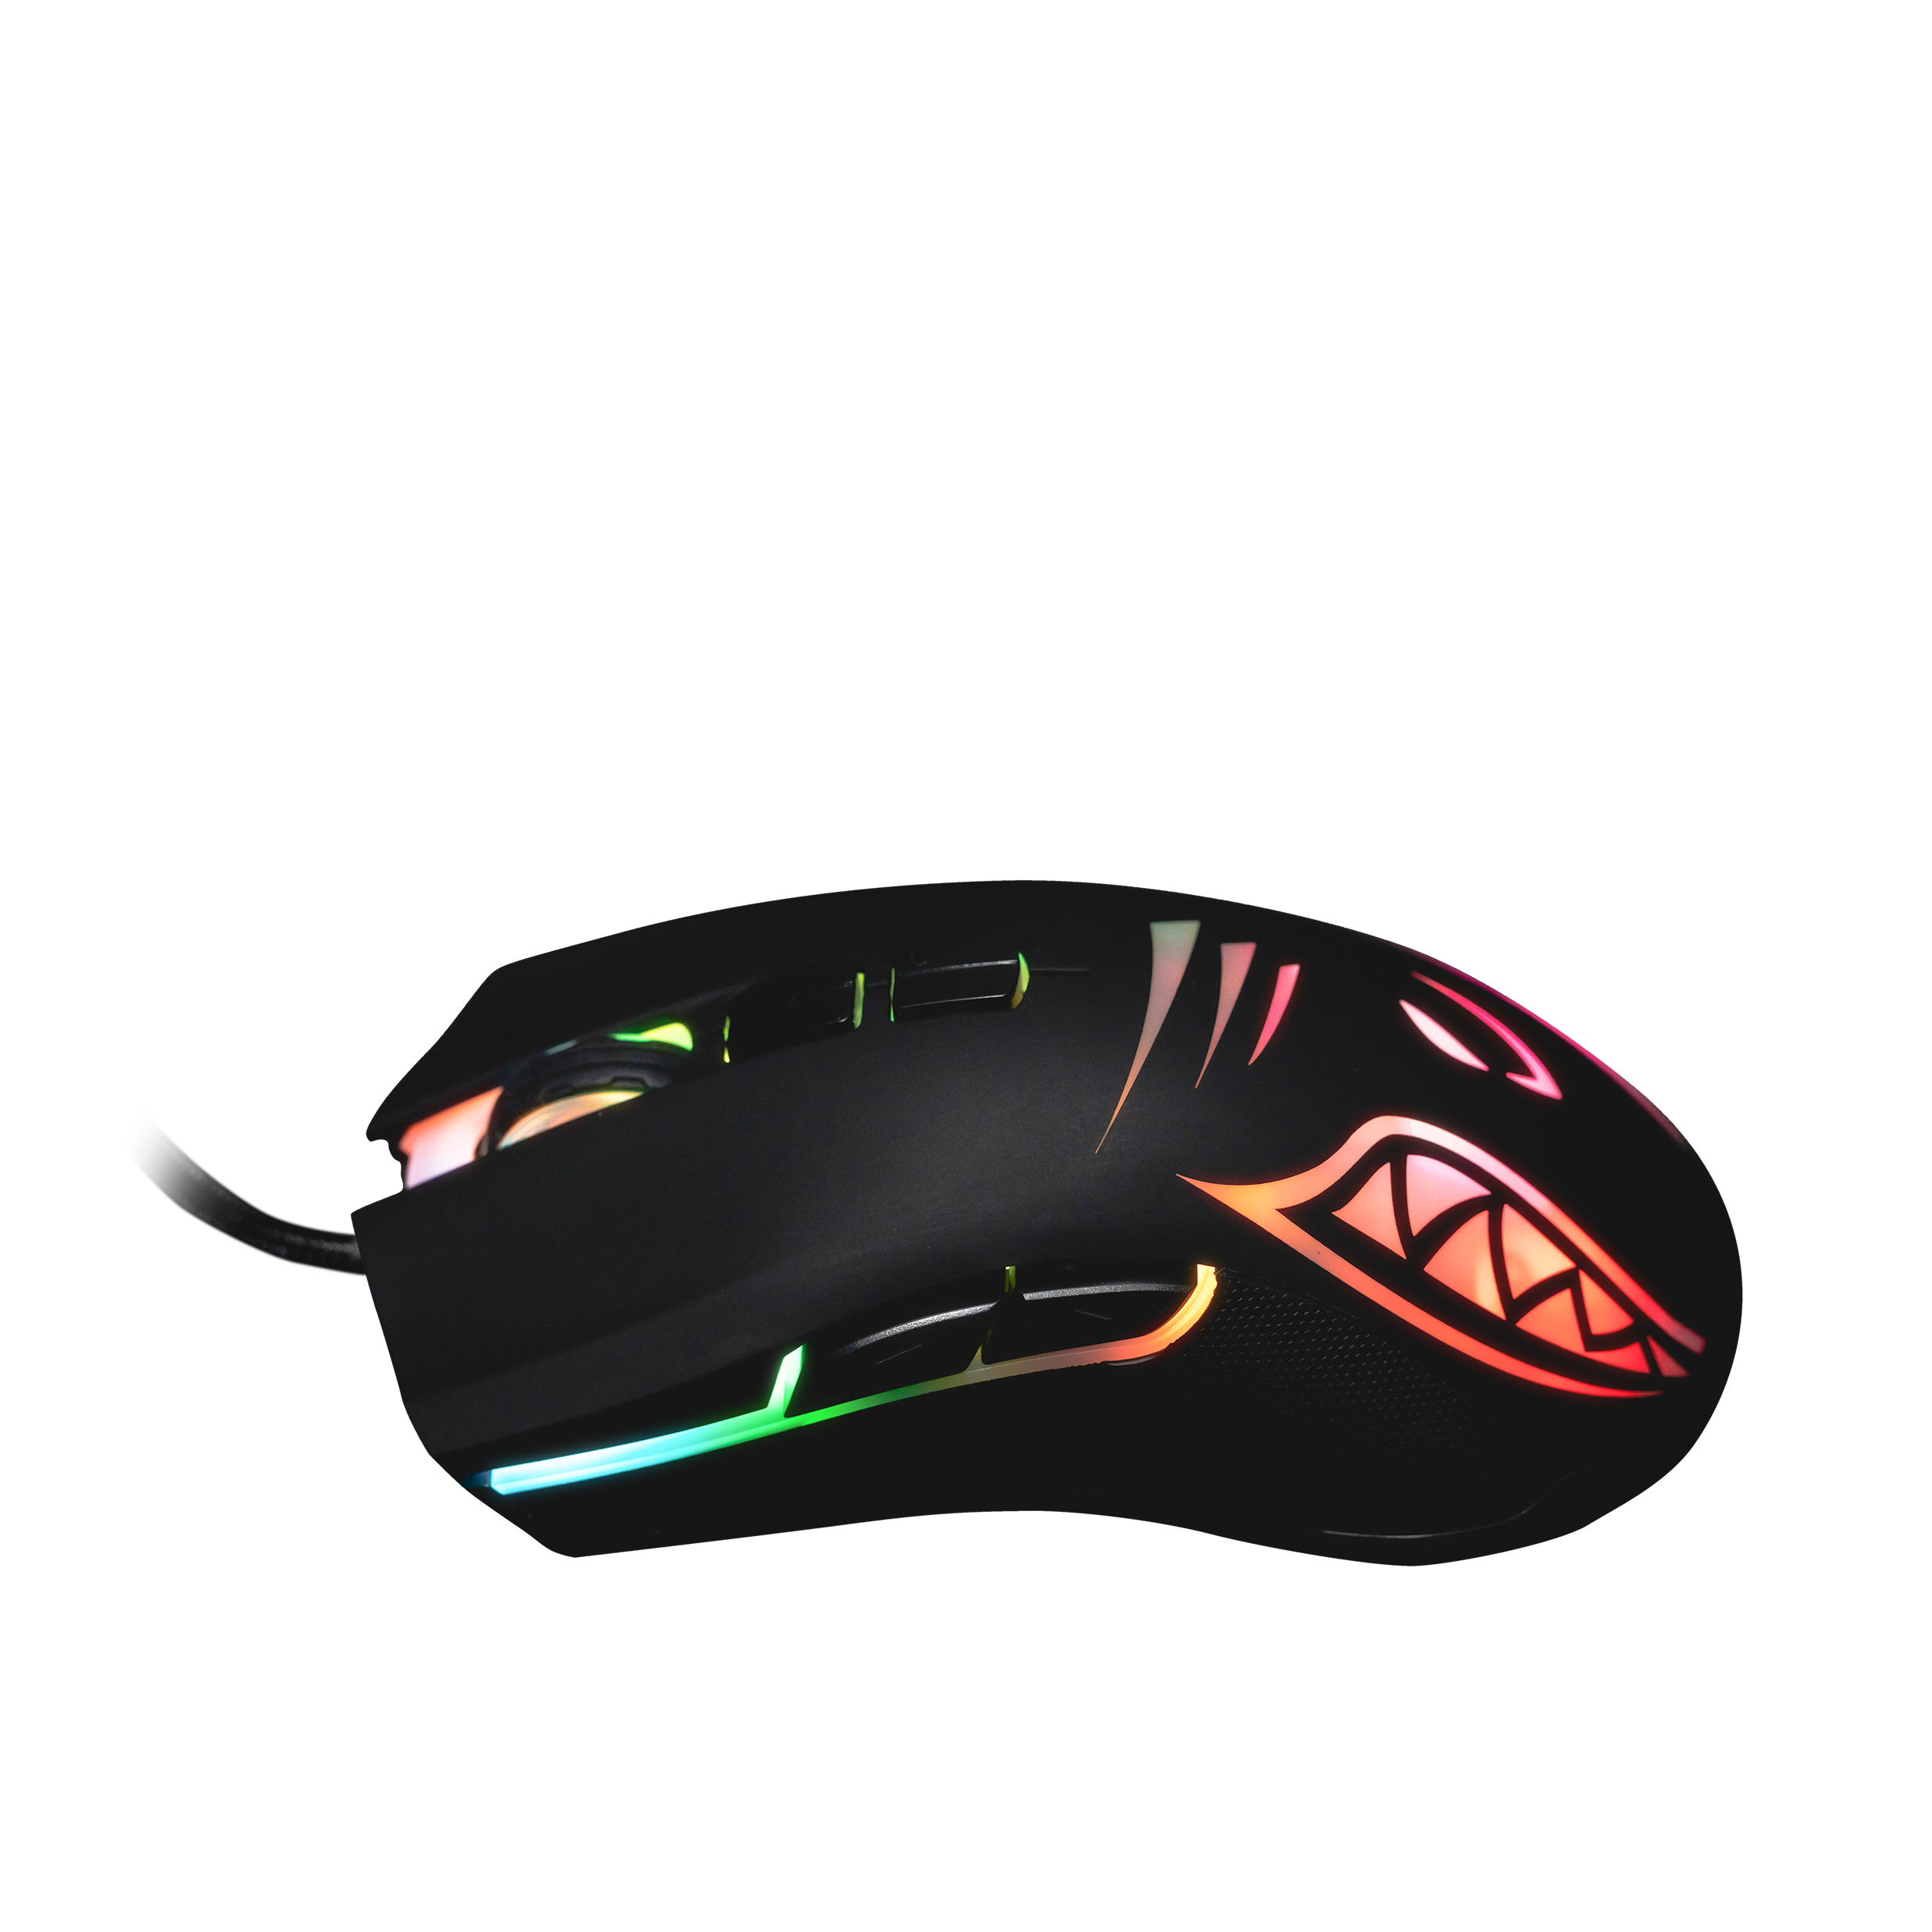 Customizable Shark Velocity Gamingmus